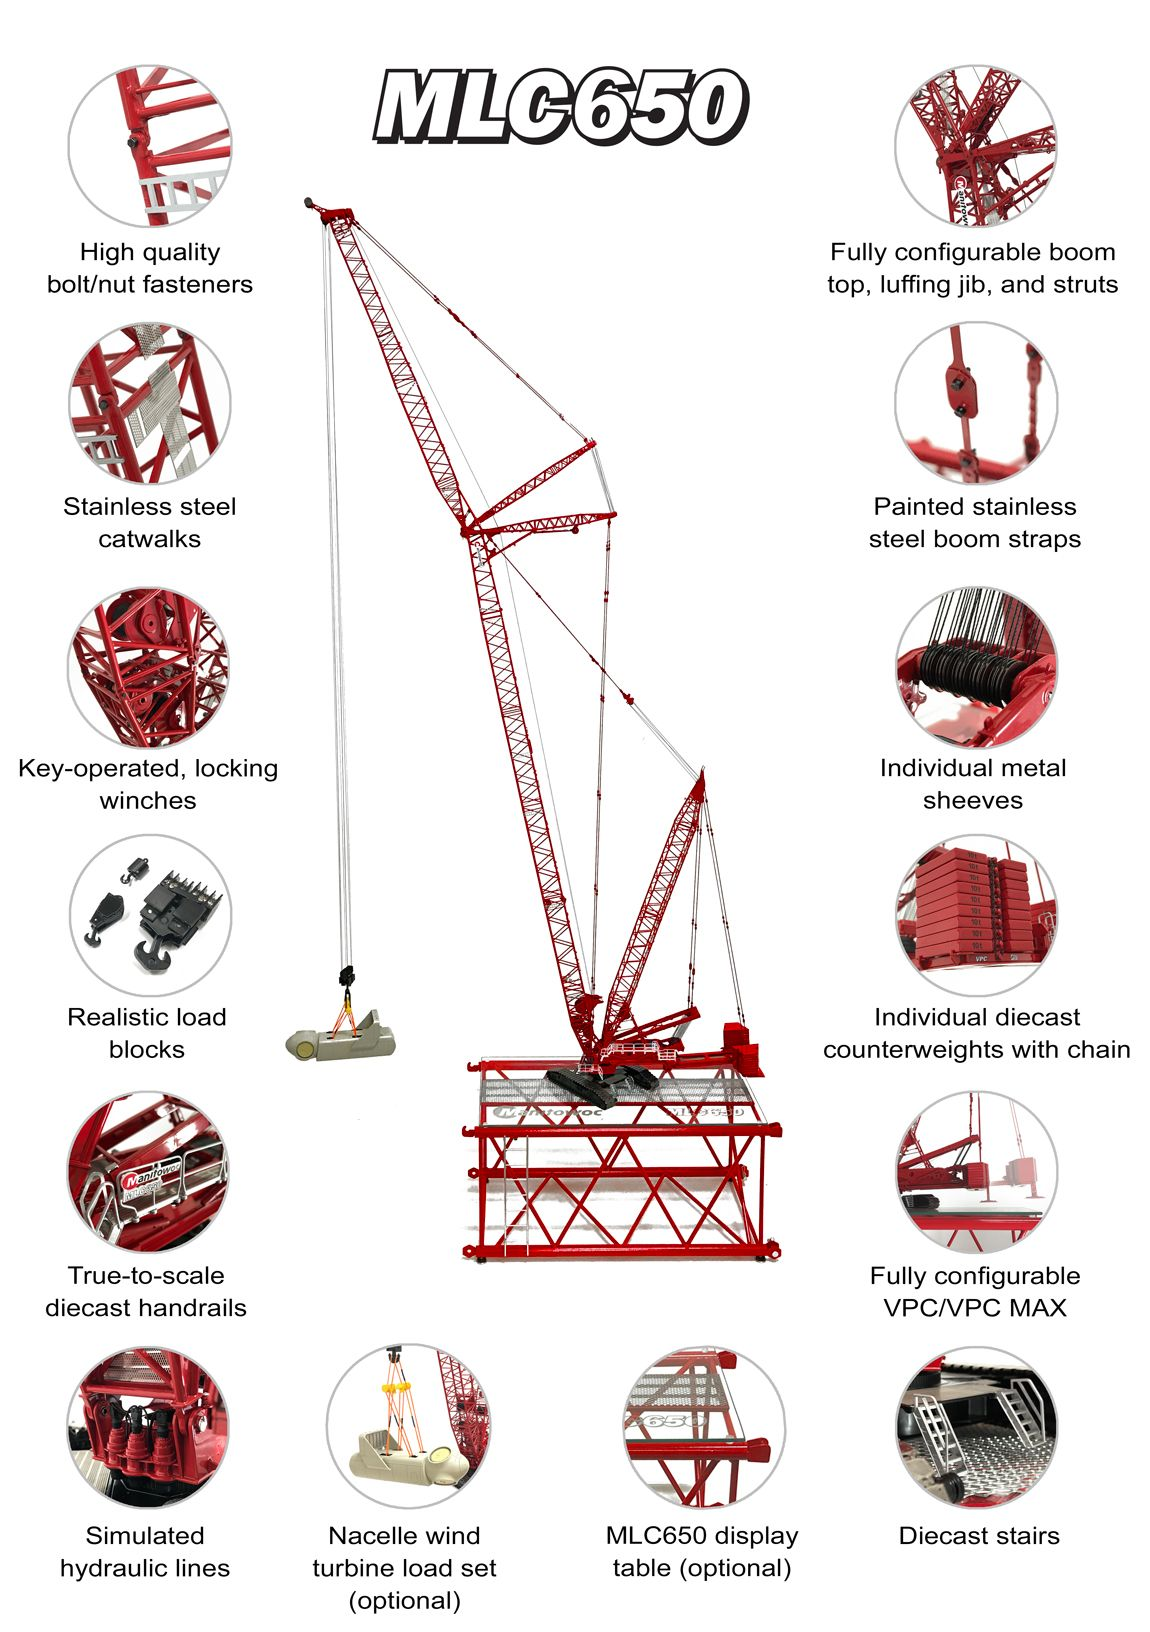 Weiss Brothers Towsley s Manitowoc MLC650 Lattice-Boom